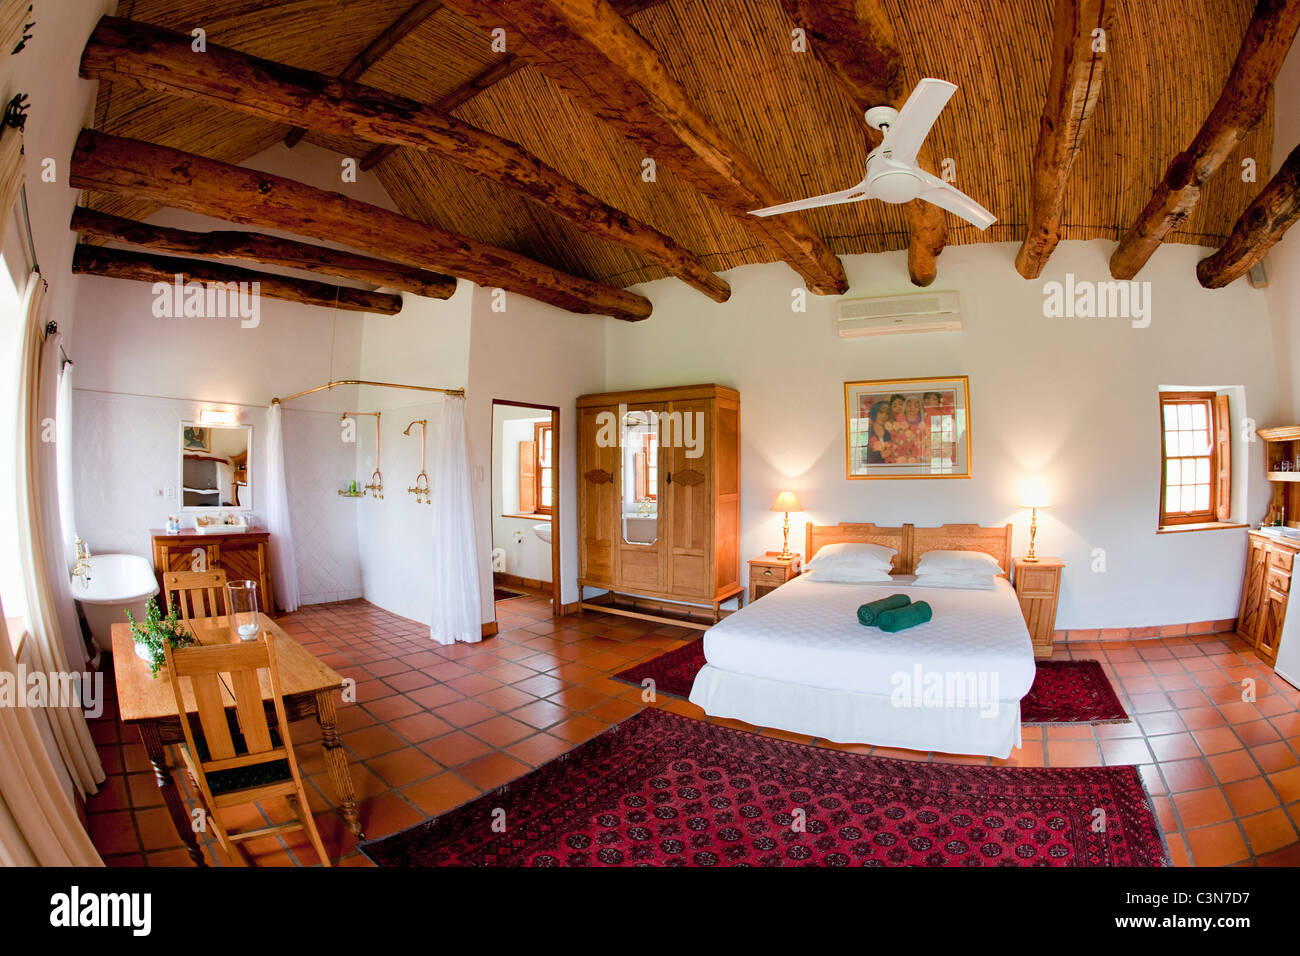 South Africa, Western Cape, Calitzdorp, Red Mountain Nature Reserve. Spacious room. - Stock Image